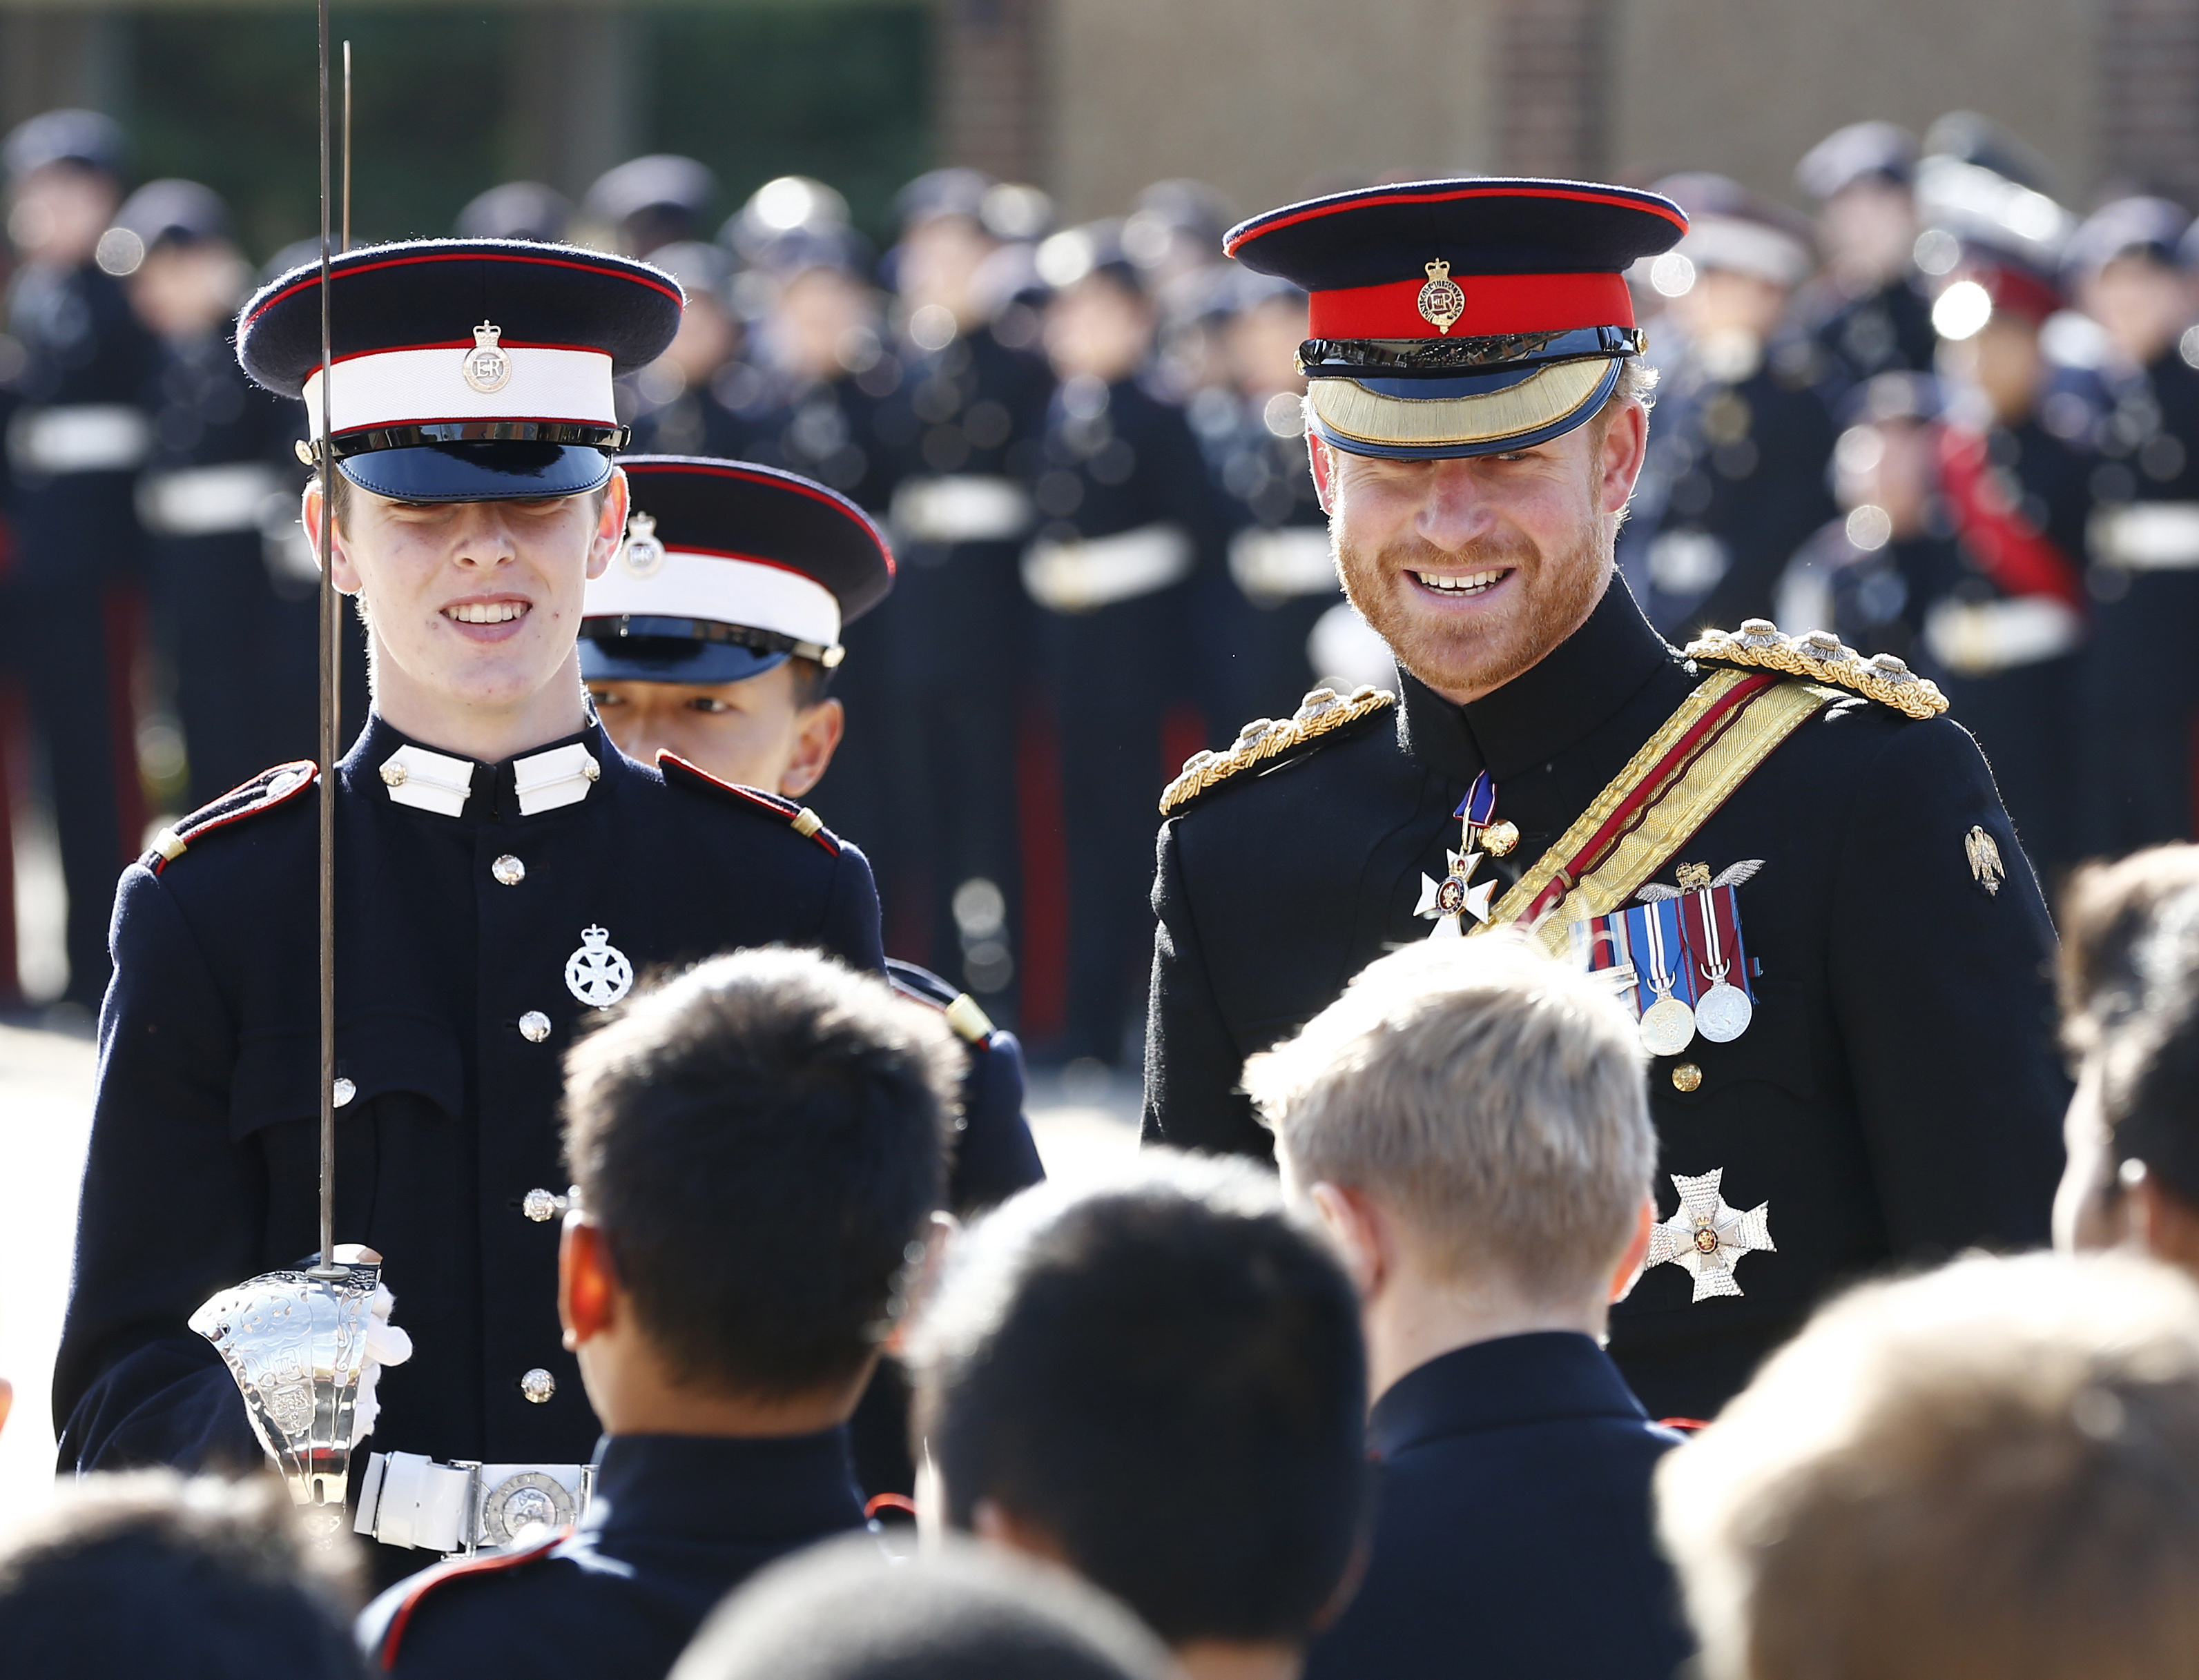 prince harry wears blue and royals regiment uniform for